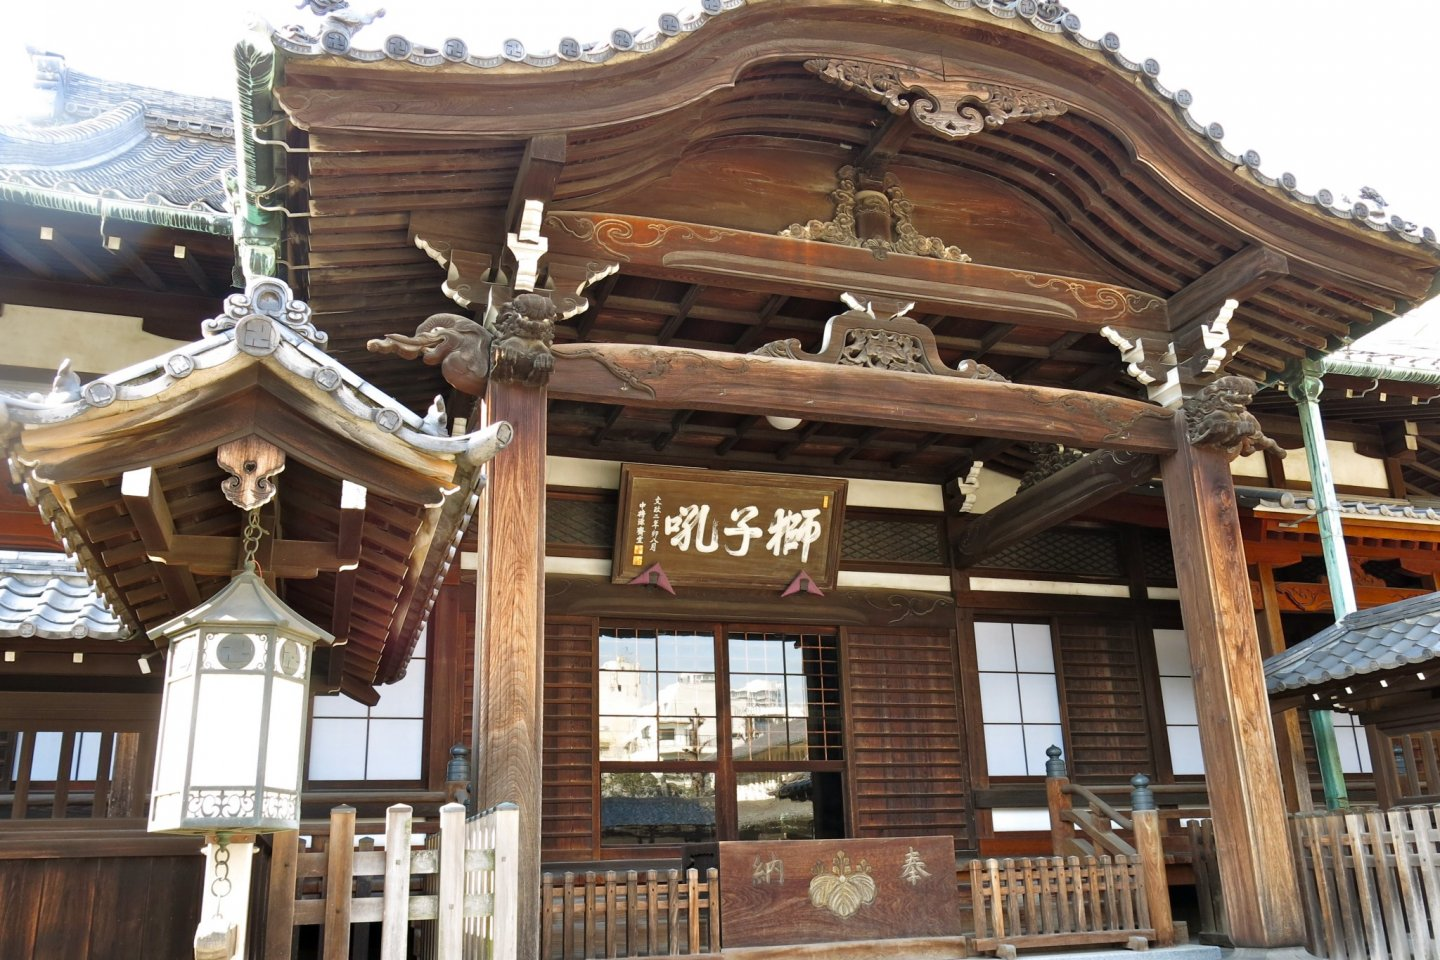 Hondo (Main Hall). It is here that the abbot and training monks regularly practice Zazen (Buddhist meditation), recite sutras and officiate ceremonies